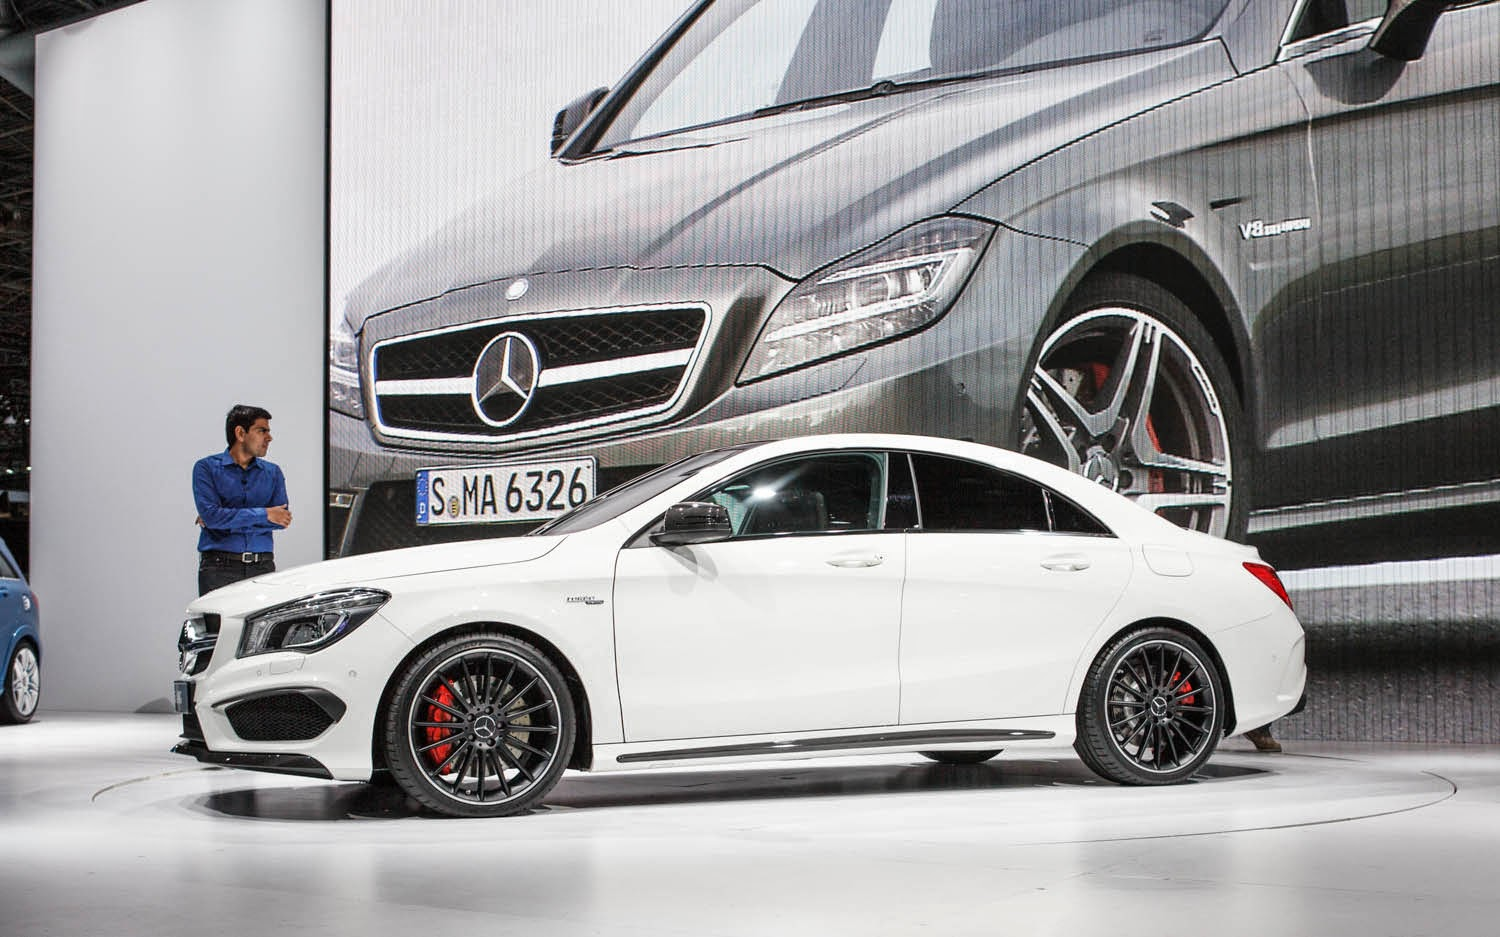 Mercedes-Benz CLA45 AMG New Interior and Exterior background HD